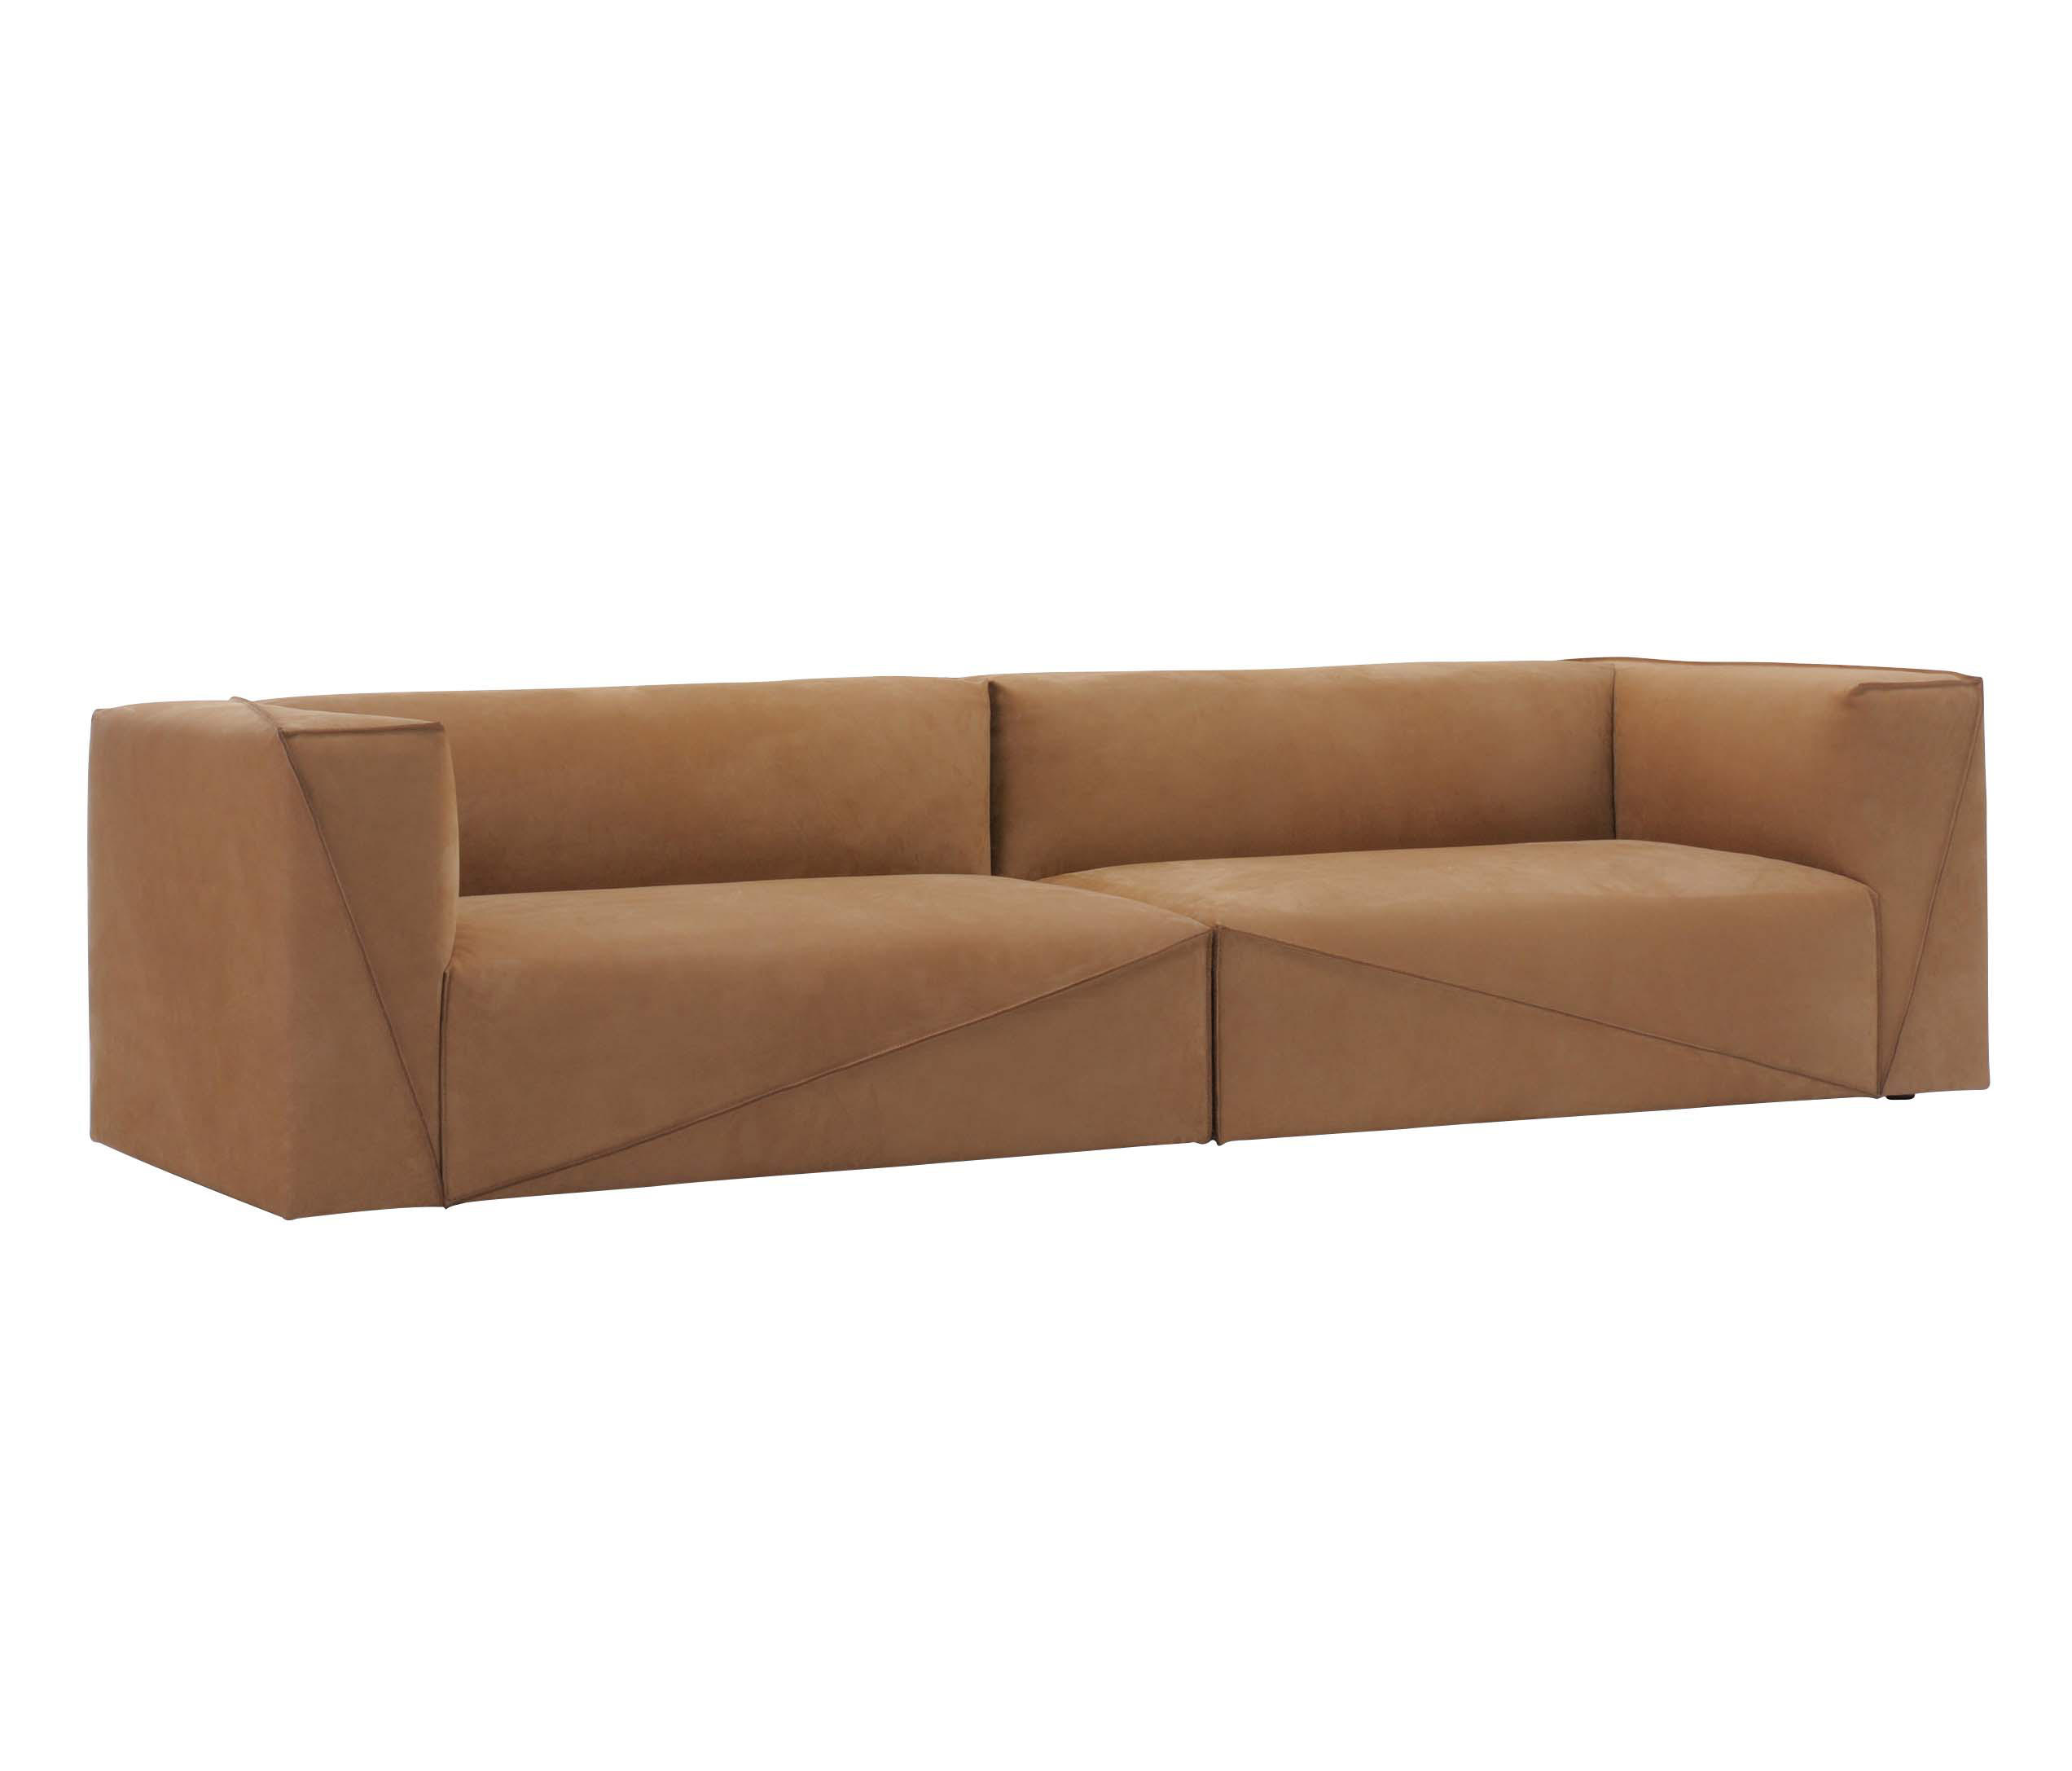 DIAGONAL SECTIONAL SOFA Lounge sofas from Fendi Casa